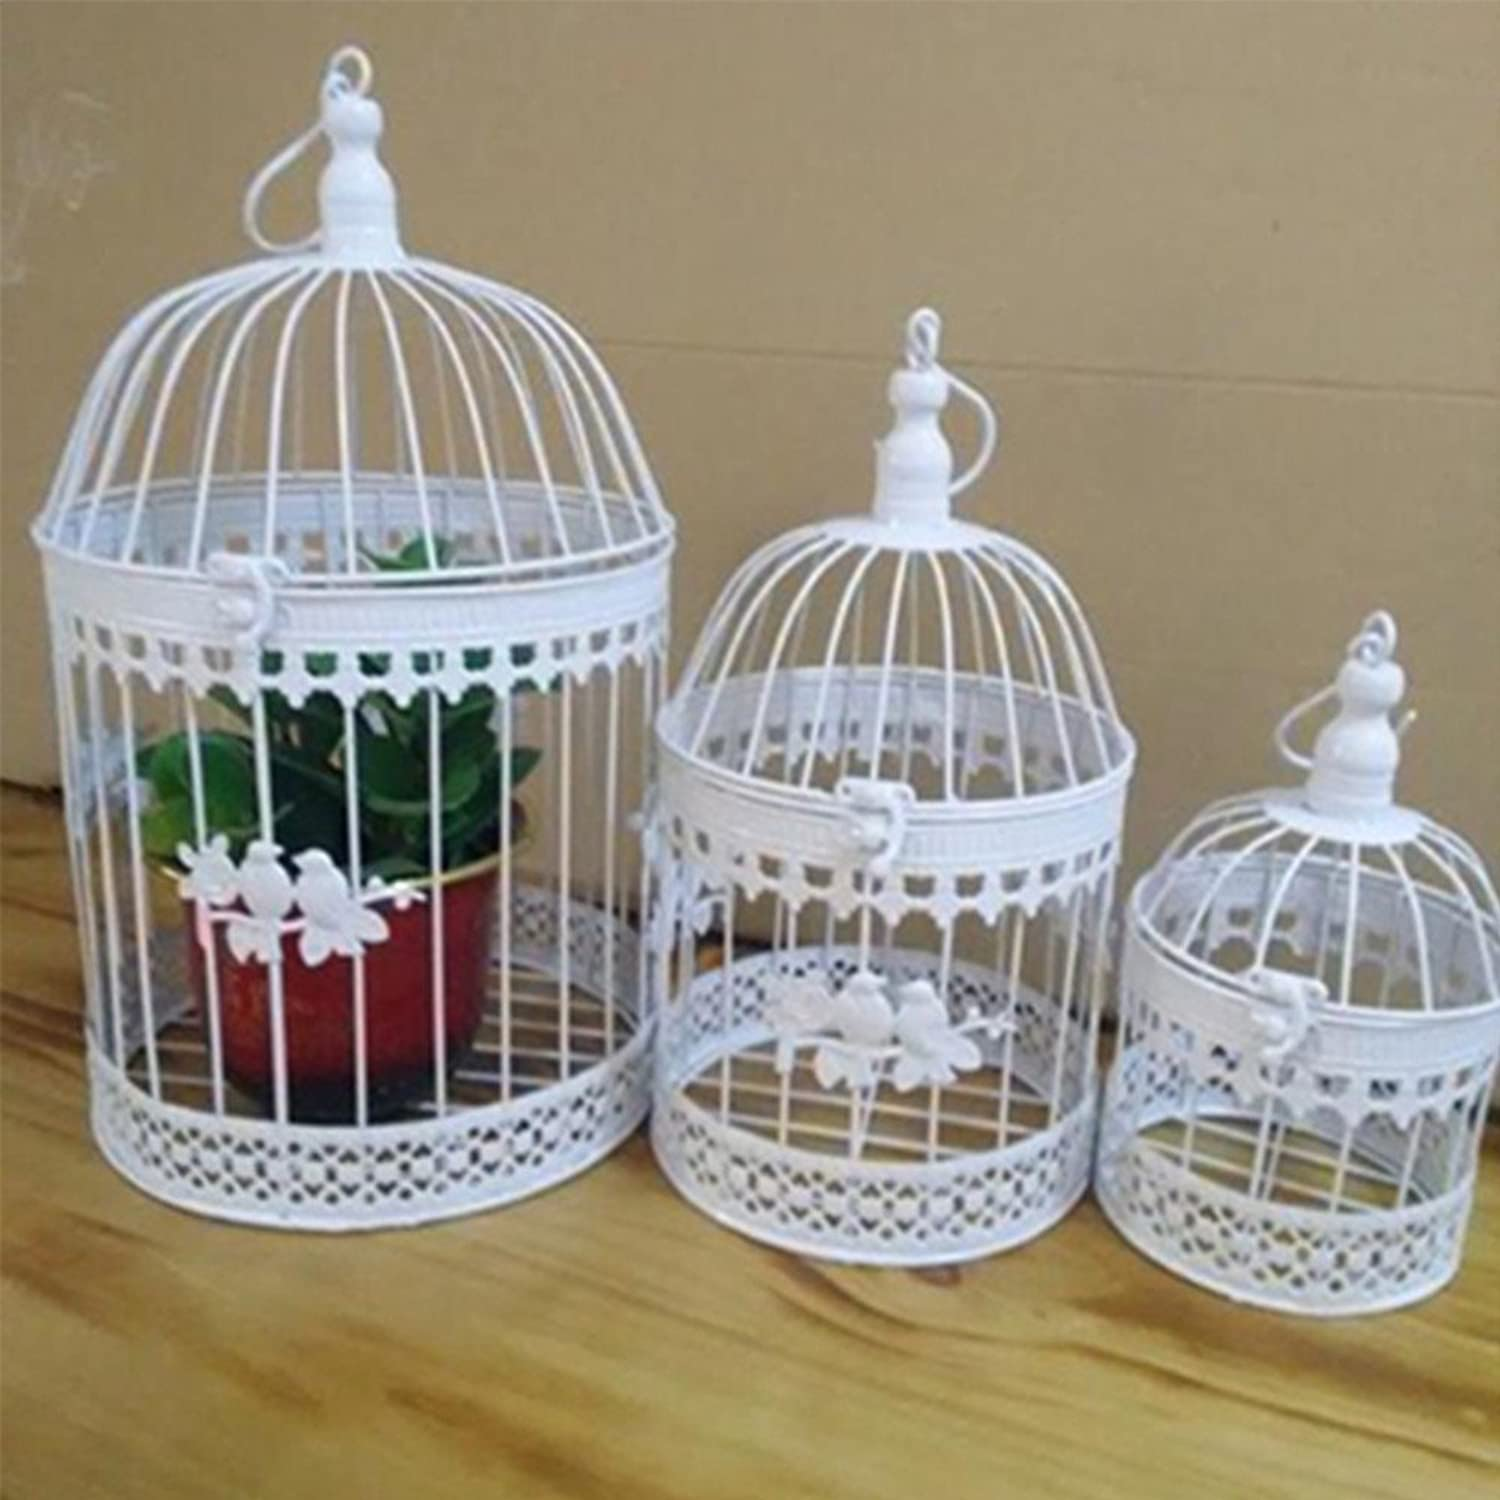 Fashion Antique Decorative Bird Cages Classic Iron Flower Decor Birdcage